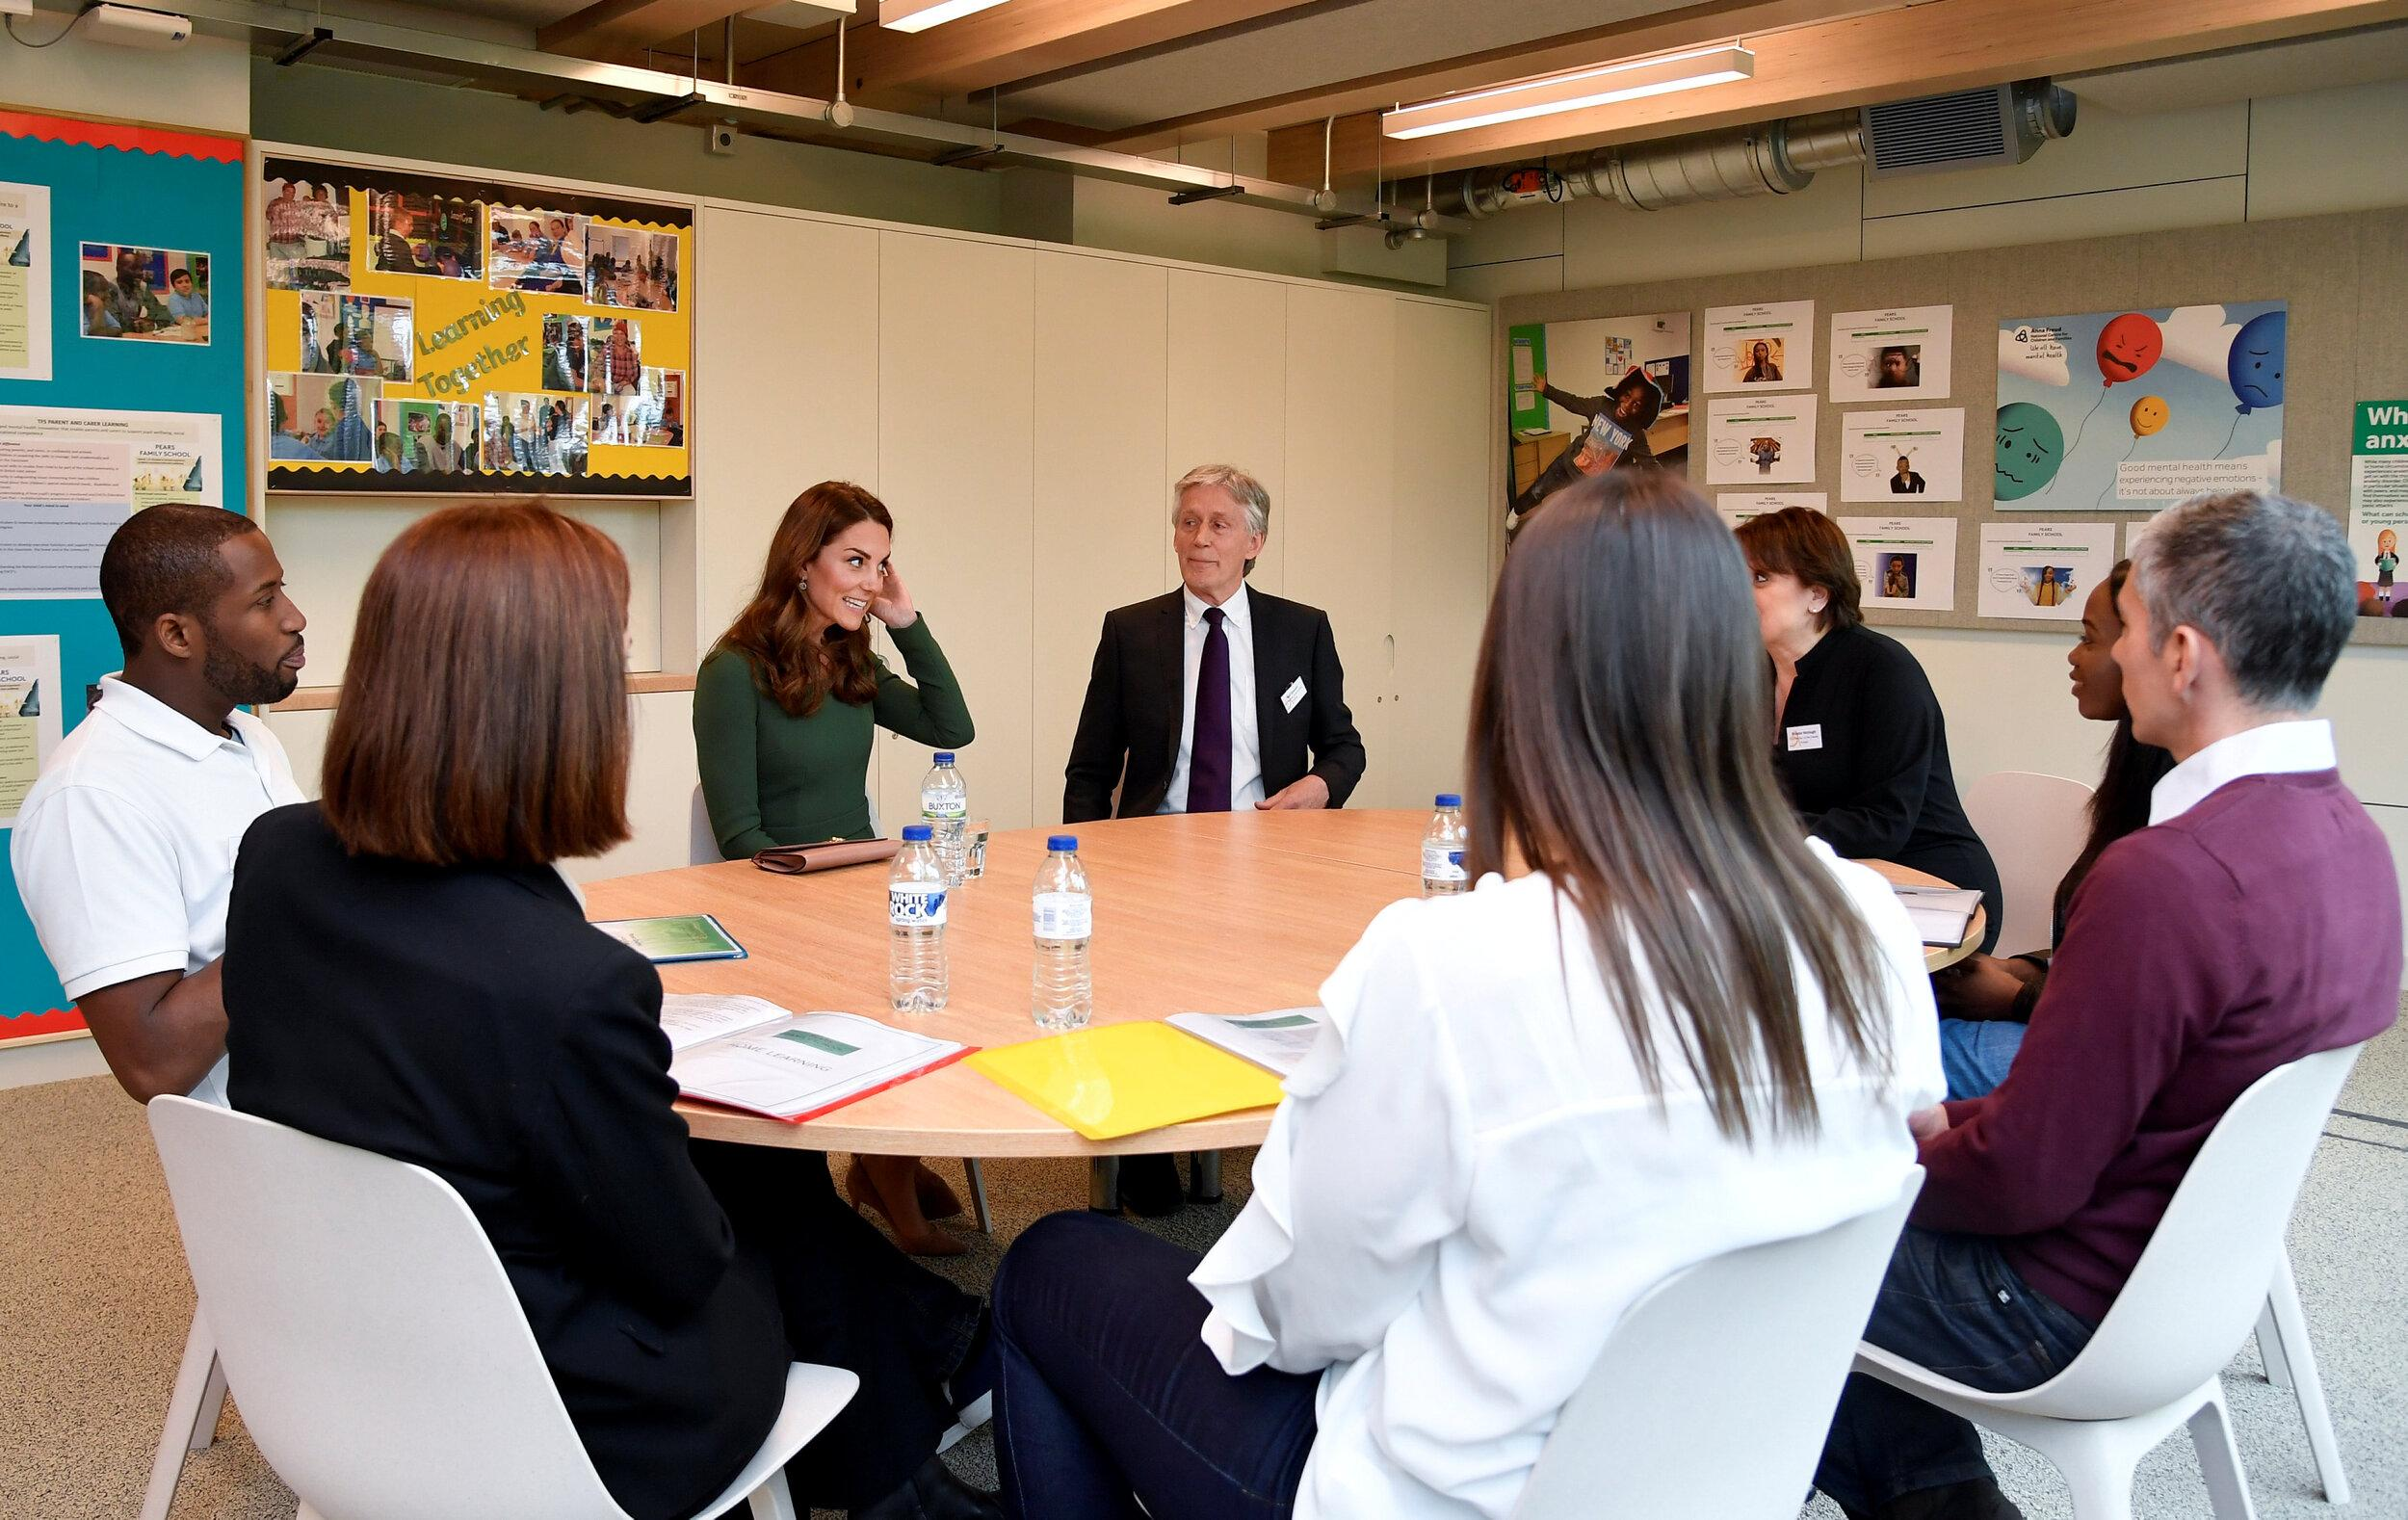 Britain's Catherine, Duchess of Cambridge speaks with users of the Anna Freud National Centre for Children and Families during her visit in London on May 1, 2019. (Photo by TOBY MELVILLE / POOL / AFP)        (Photo credit should read TOBY MELVILLE/AFP/Getty Images)